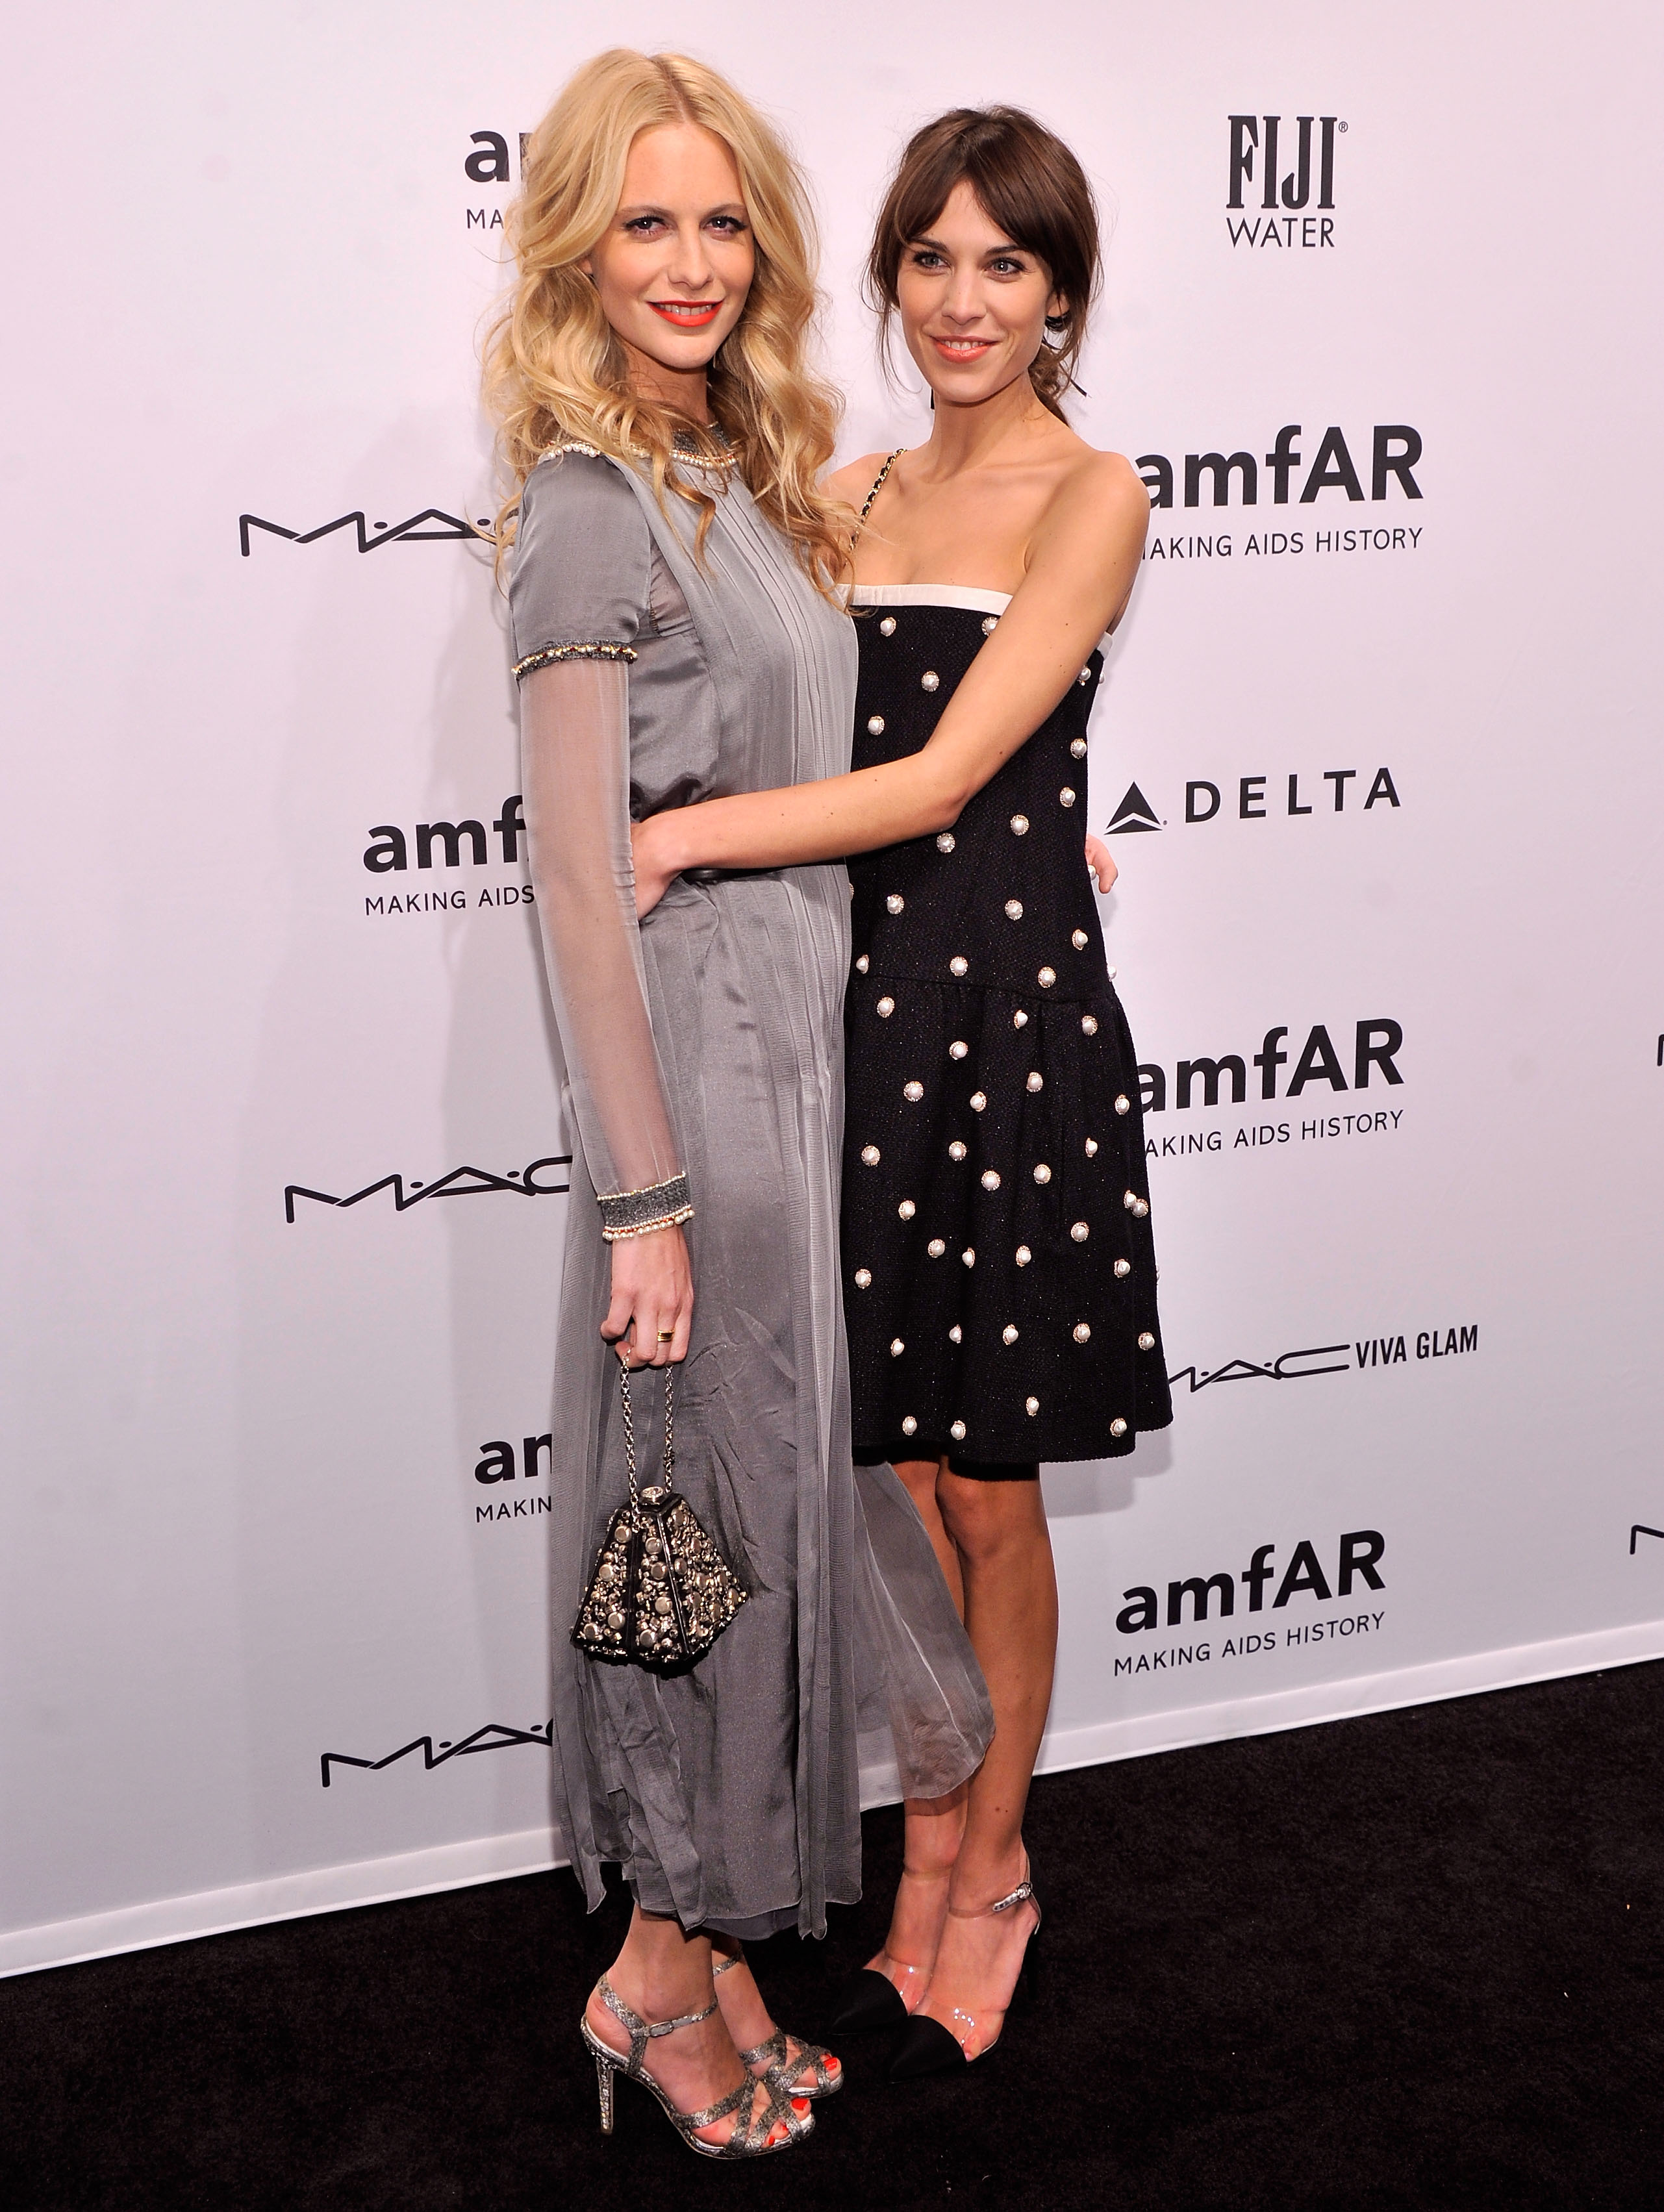 Alexa Chung hugged friend Poppy Delevingne at the amfAR New York Gala on Wednesday.